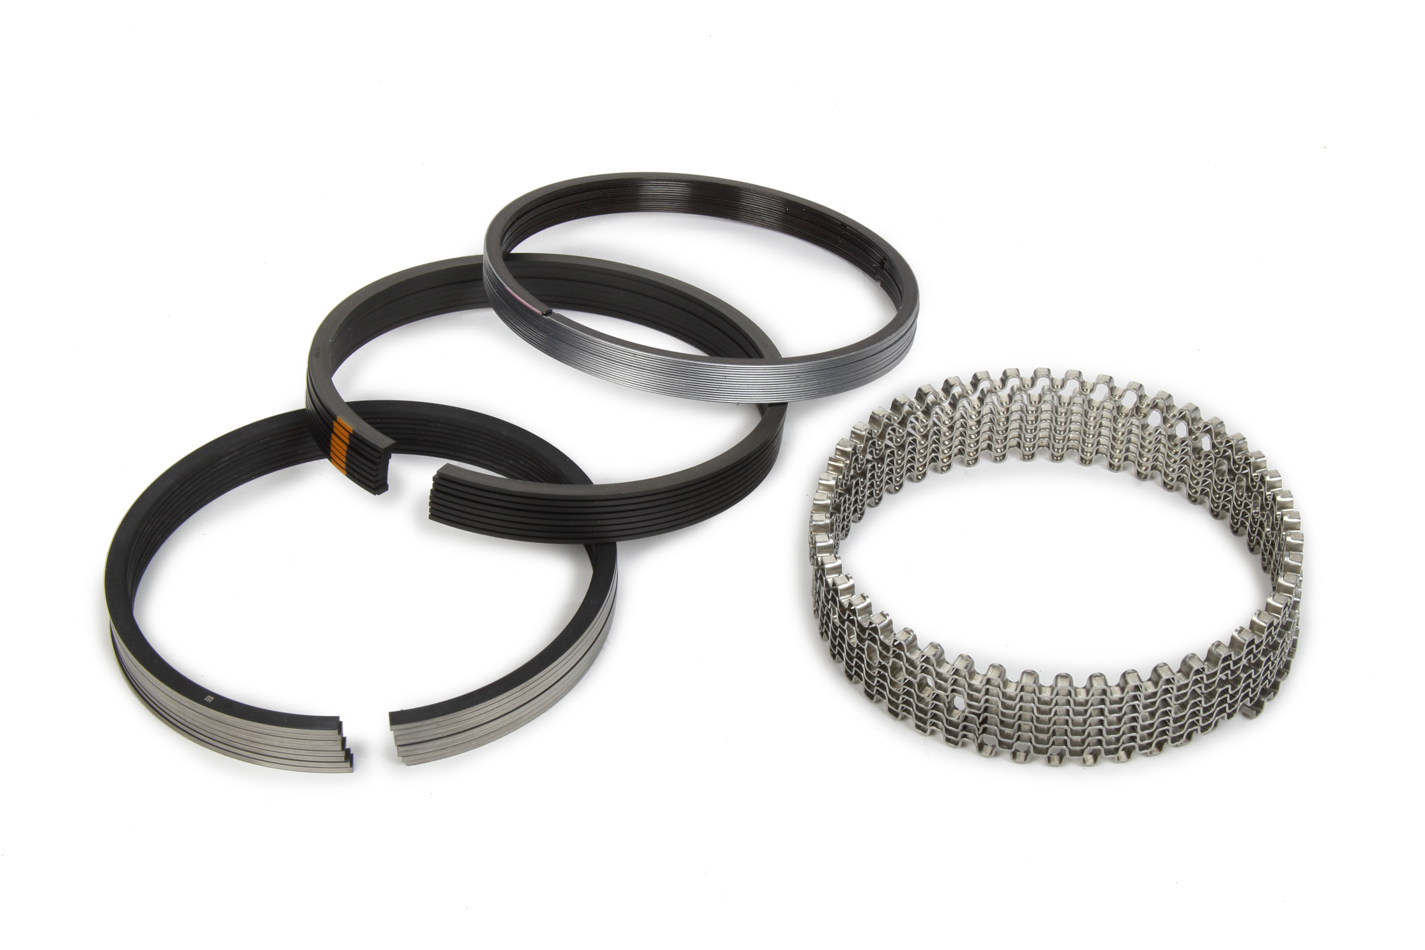 Michigan 77 315-0032.035 Piston Rings, 4.155 in Bore, File Fit, 1/16 x 1/16 x 3/16 in Thick, Standard Tension, Plasma Moly, 8 Cylinder, Kit